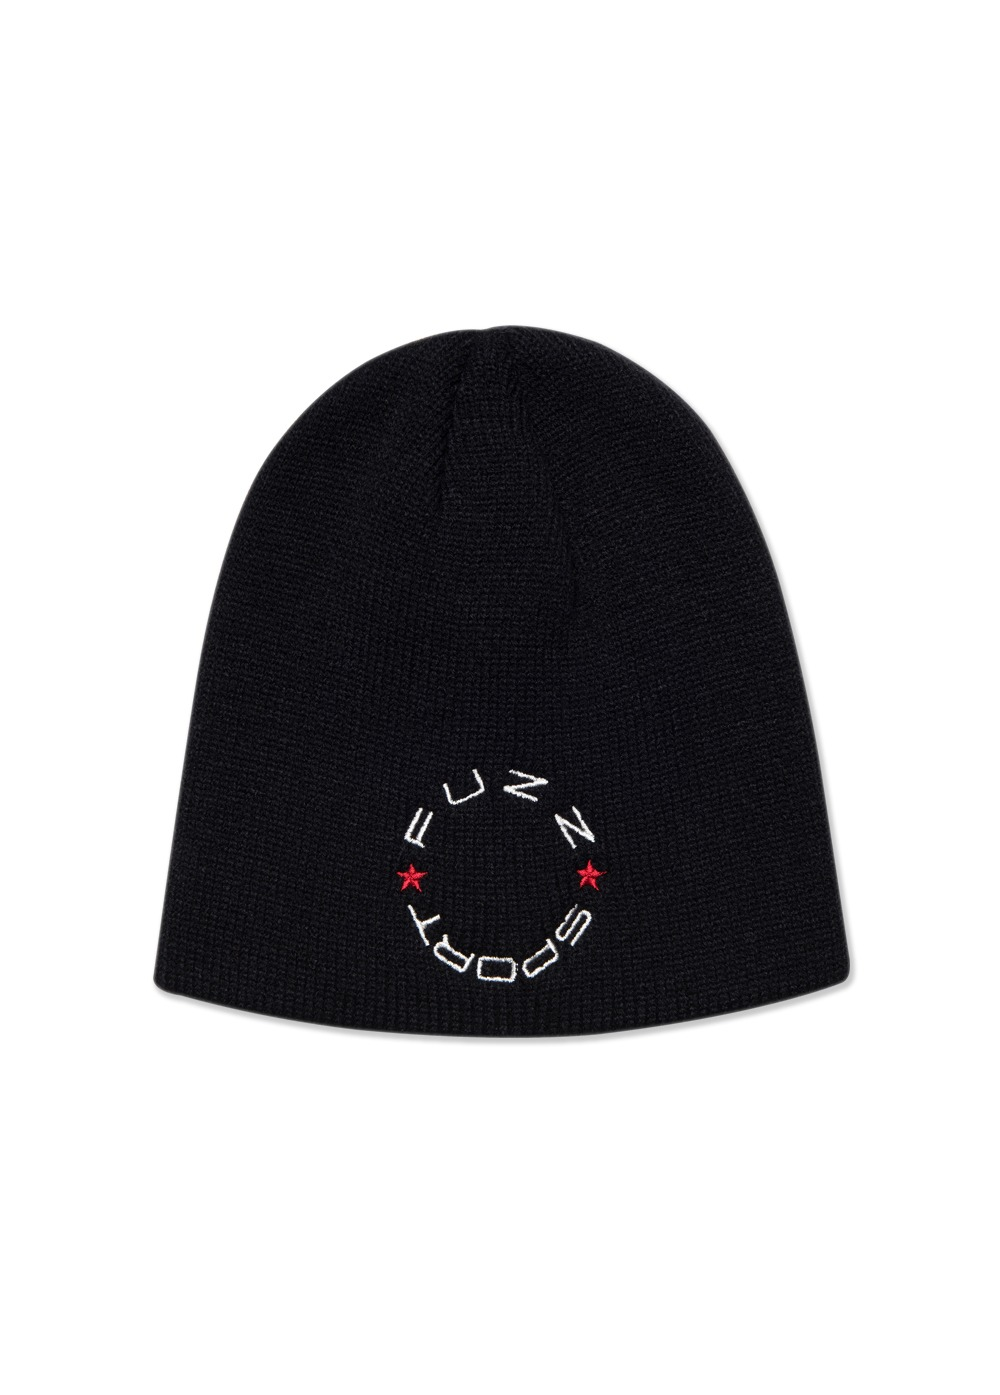 FUZZ CIRCLE LOGO BEANIE black